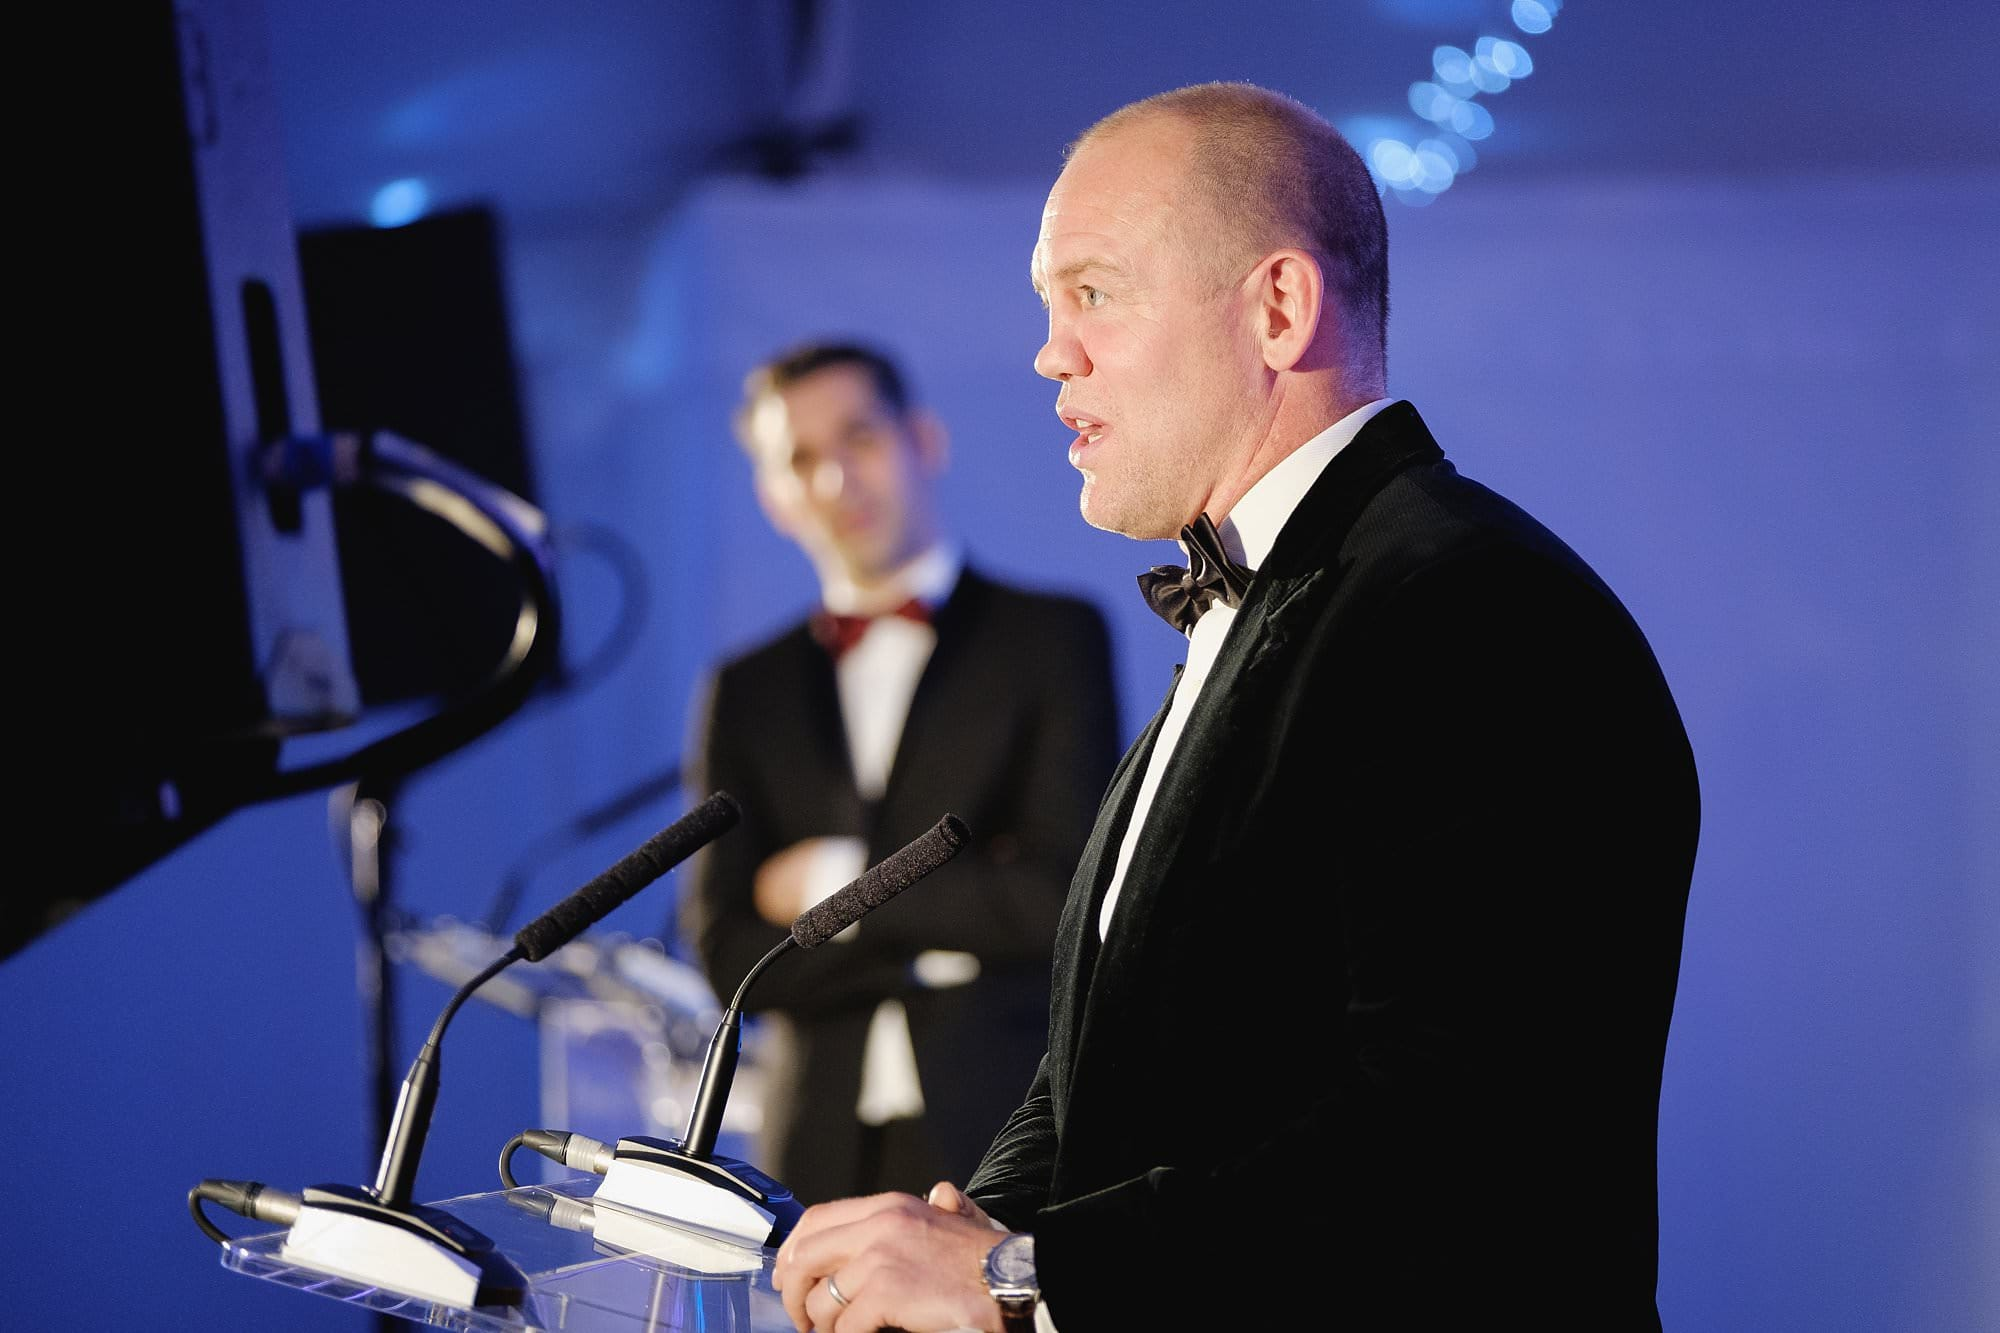 event photographer london icl 2017 017 - Imperial College London Sports Awards 2017